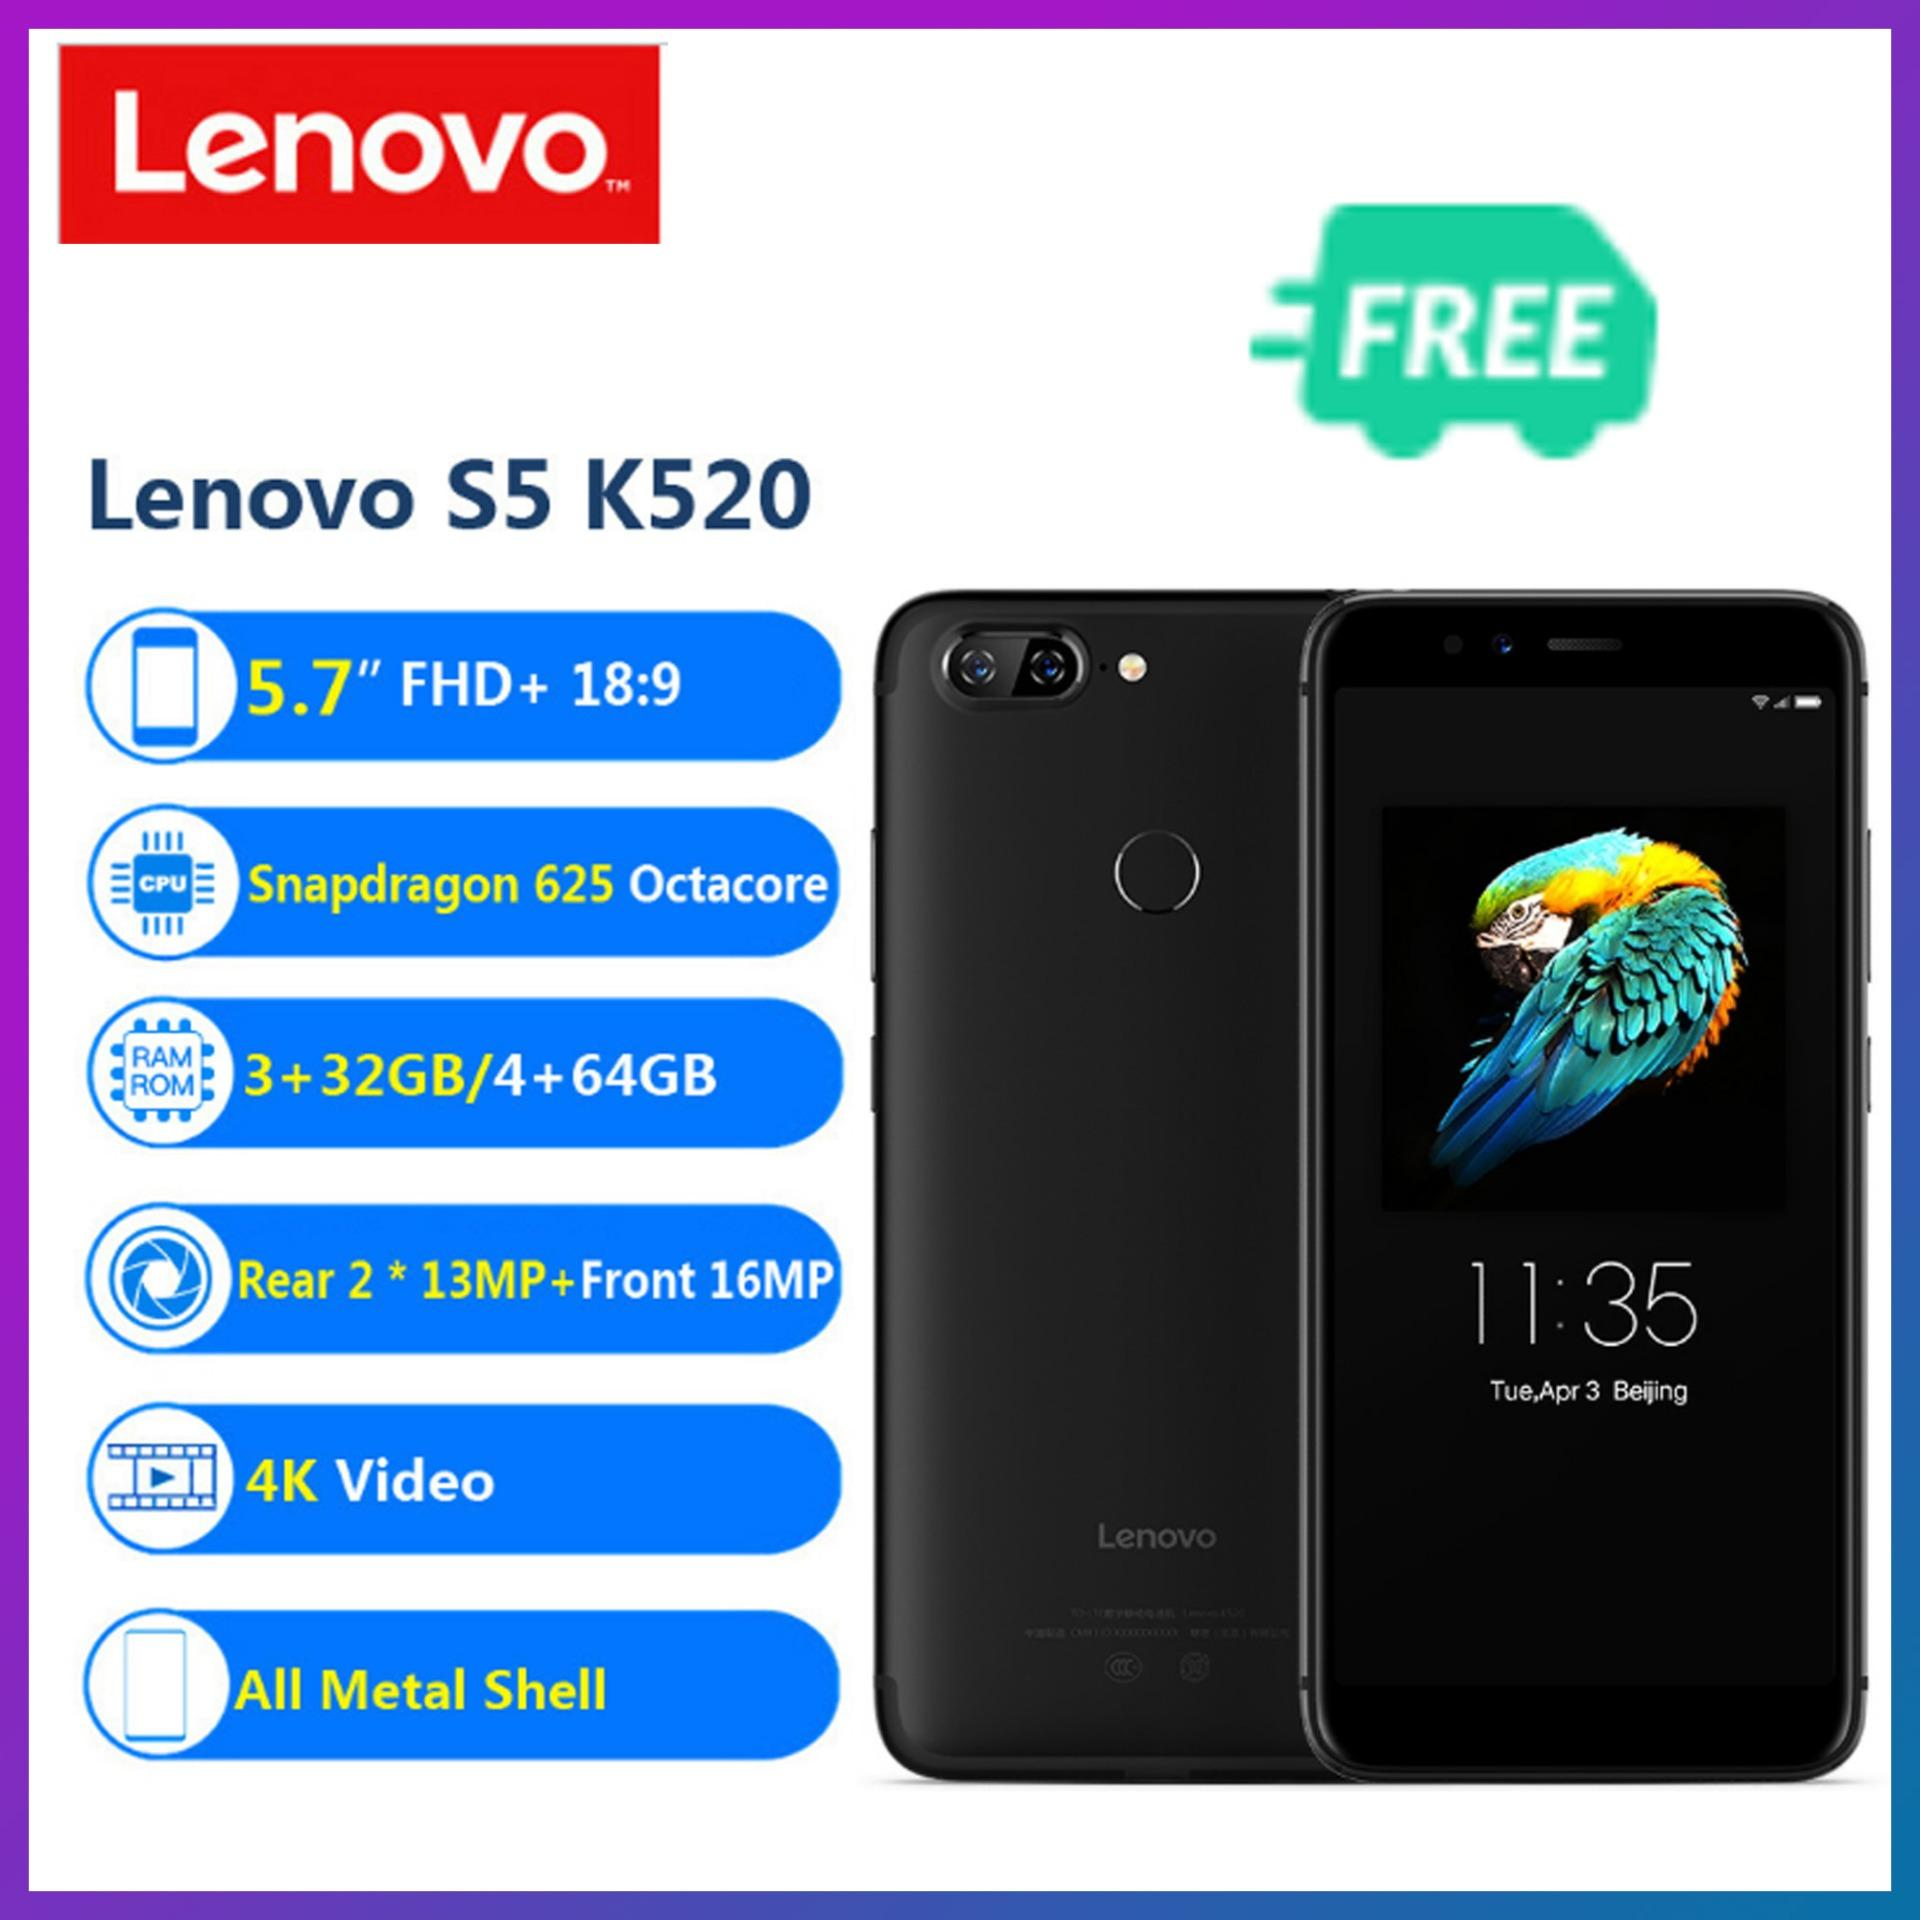 (Free Shipping Fee)Lenovo S5 K520 Face ID LTE 5 7inch FHD+ 18:9 4G RAM 64G  ROM Snapdragon 625 Octacore Android 8 0 Dual Rear 13MP + Front 16MP 4K